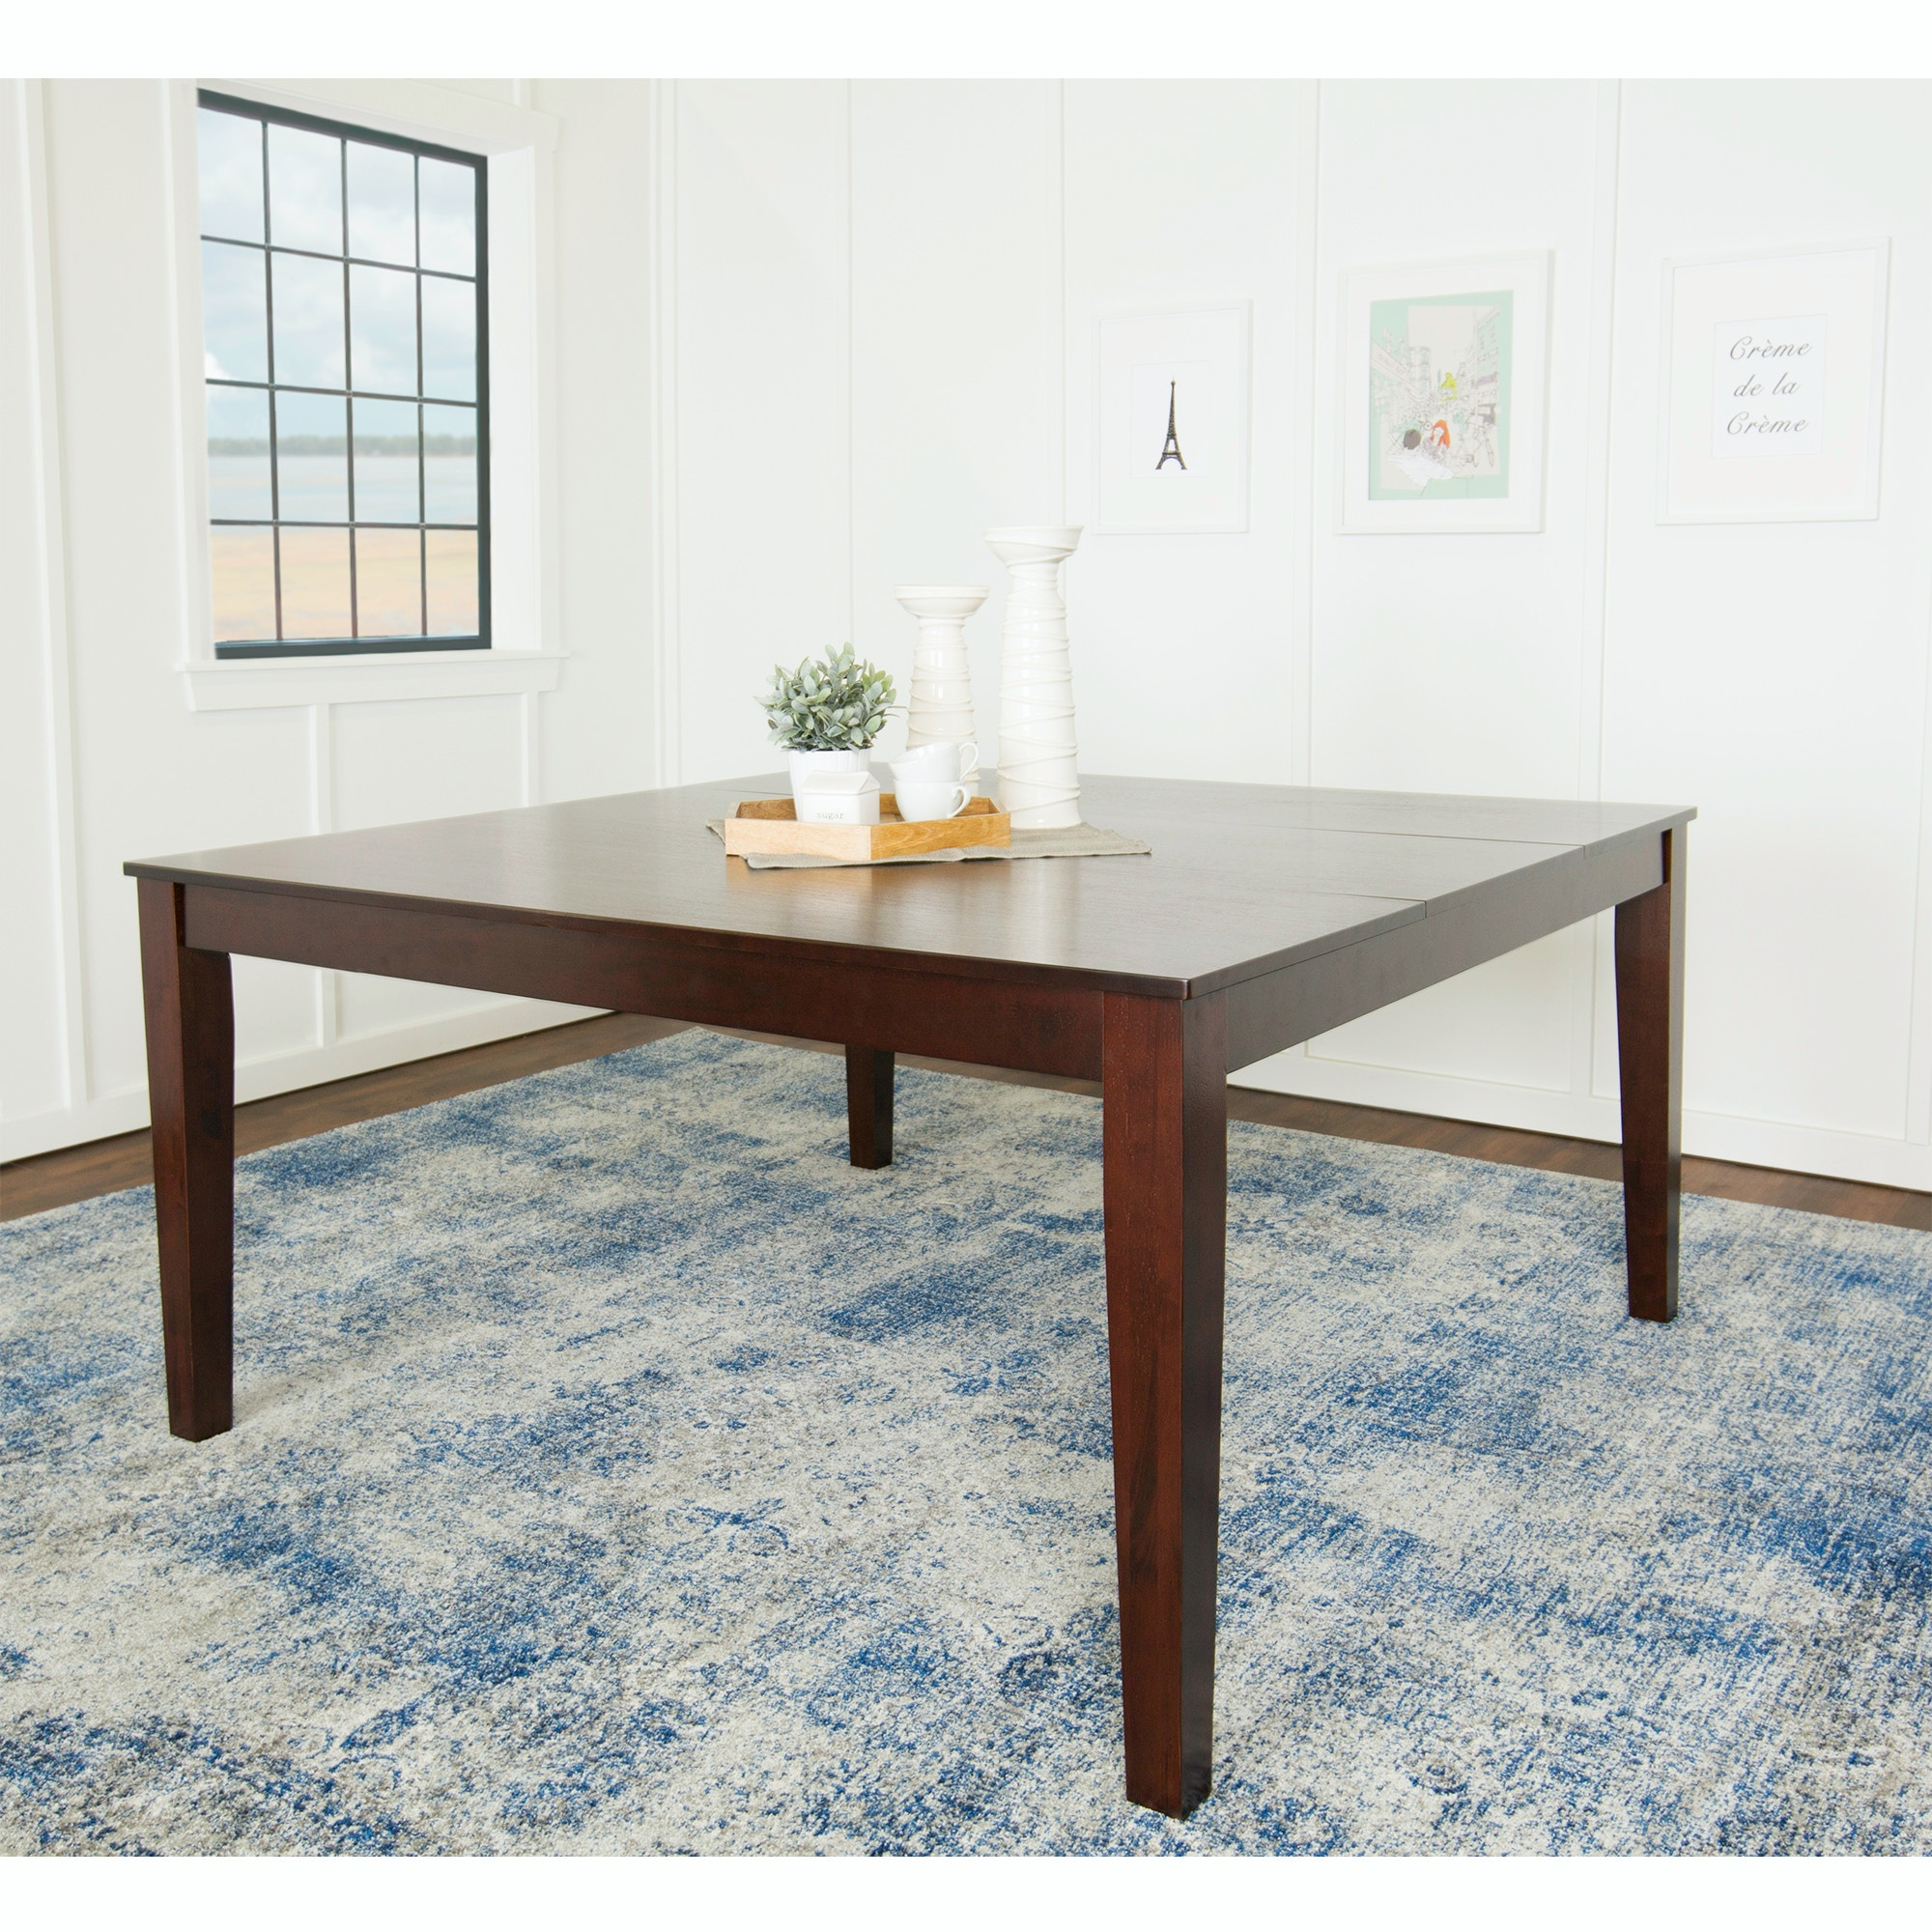 Ft Myers 60u0027u0027 Wood Square Dining Table WEDTW60SQCNO From Walter E. Smithe  Furniture